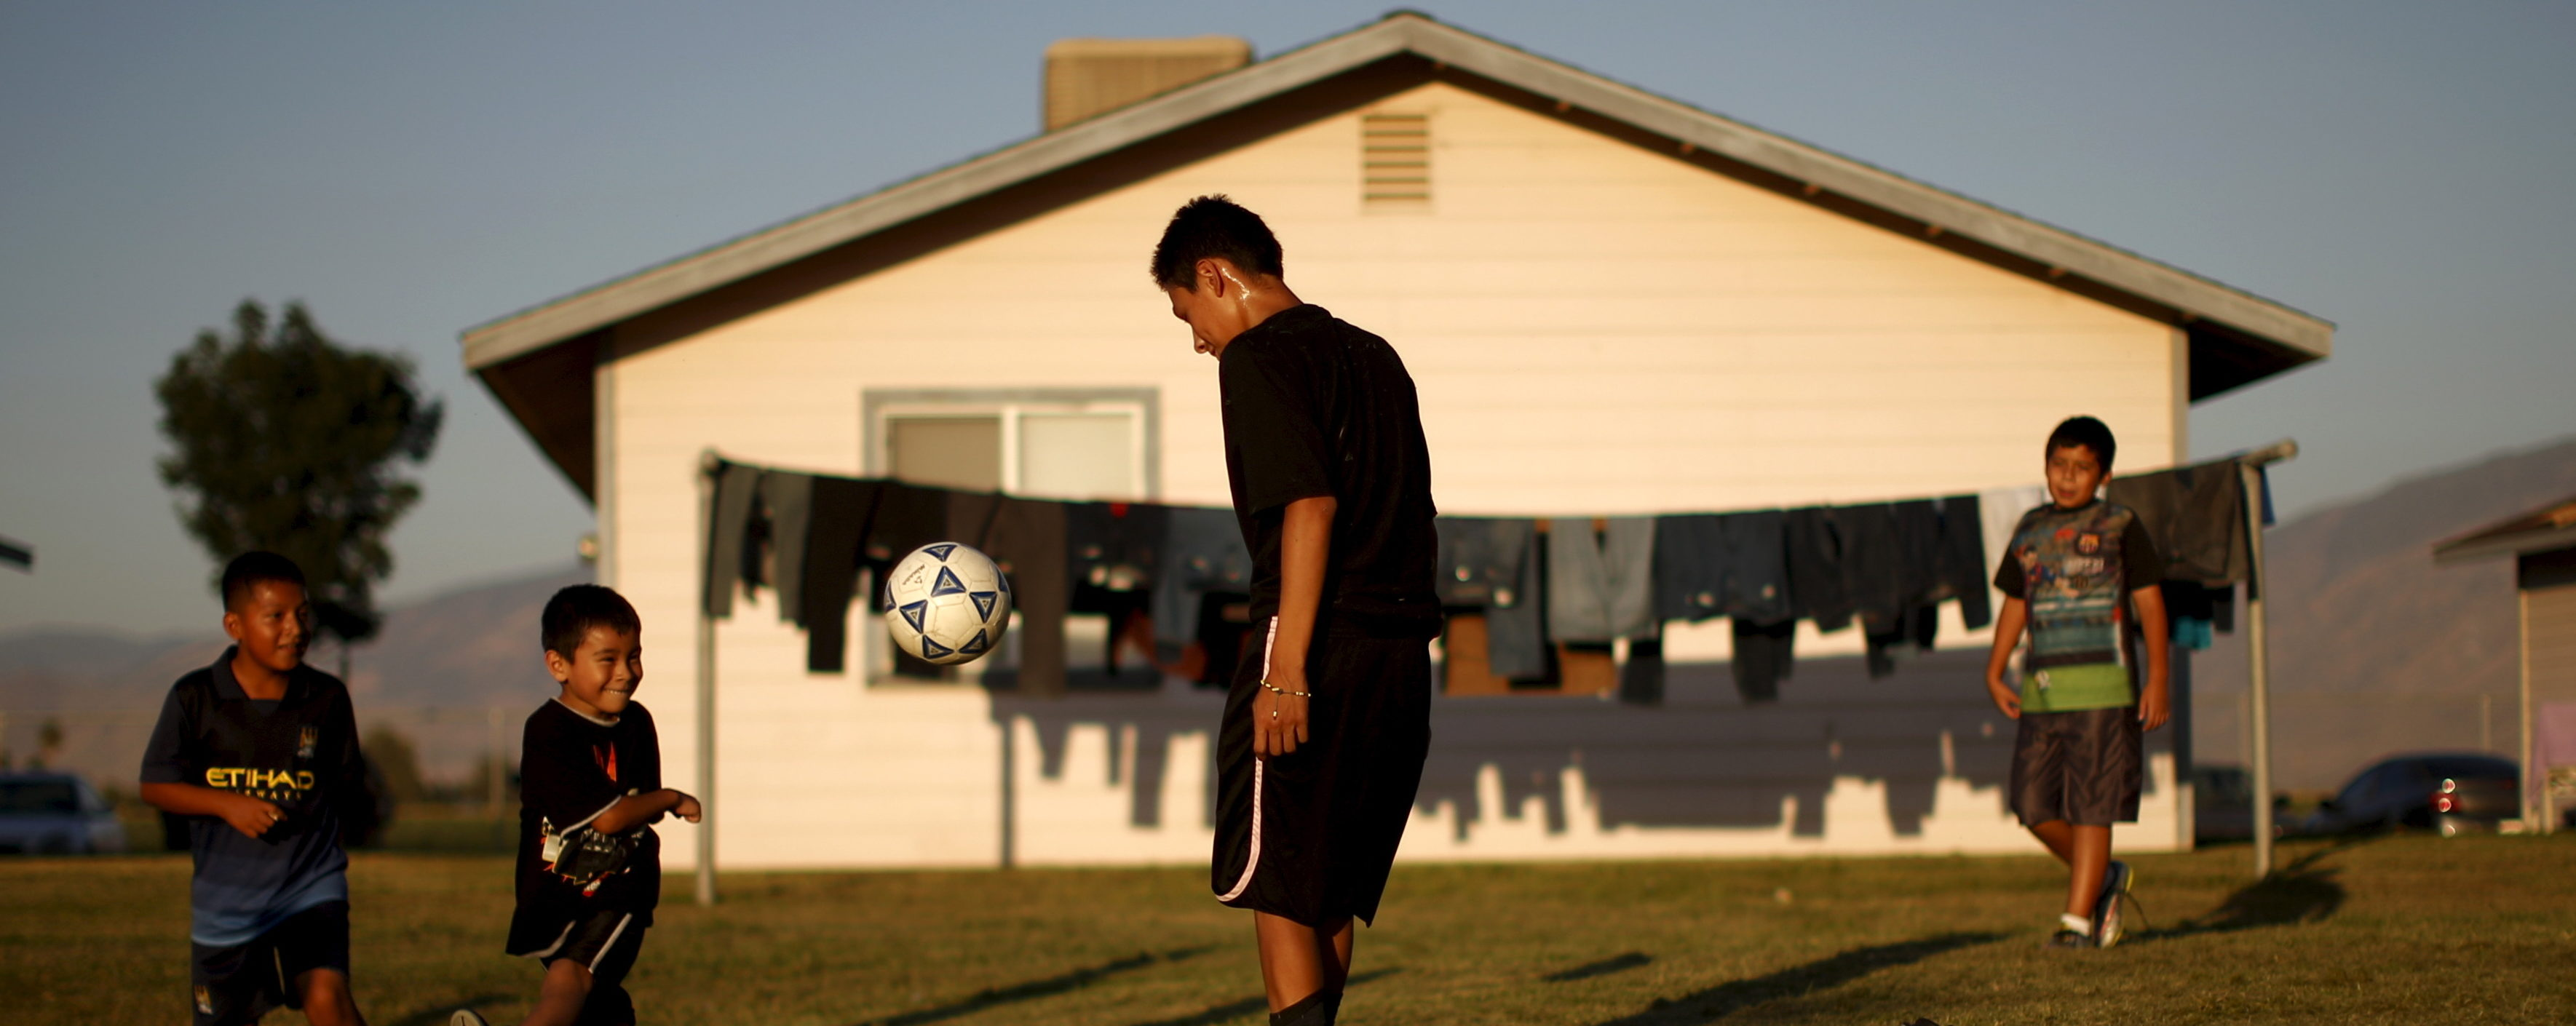 Children play soccer at a migrant farm labour housing center in Bakersfield, California, United States, July 23, 2015. California is in the fourth year of a catastrophic drought. Picture taken July 23, 2015. REUTERS/Lucy Nicholson